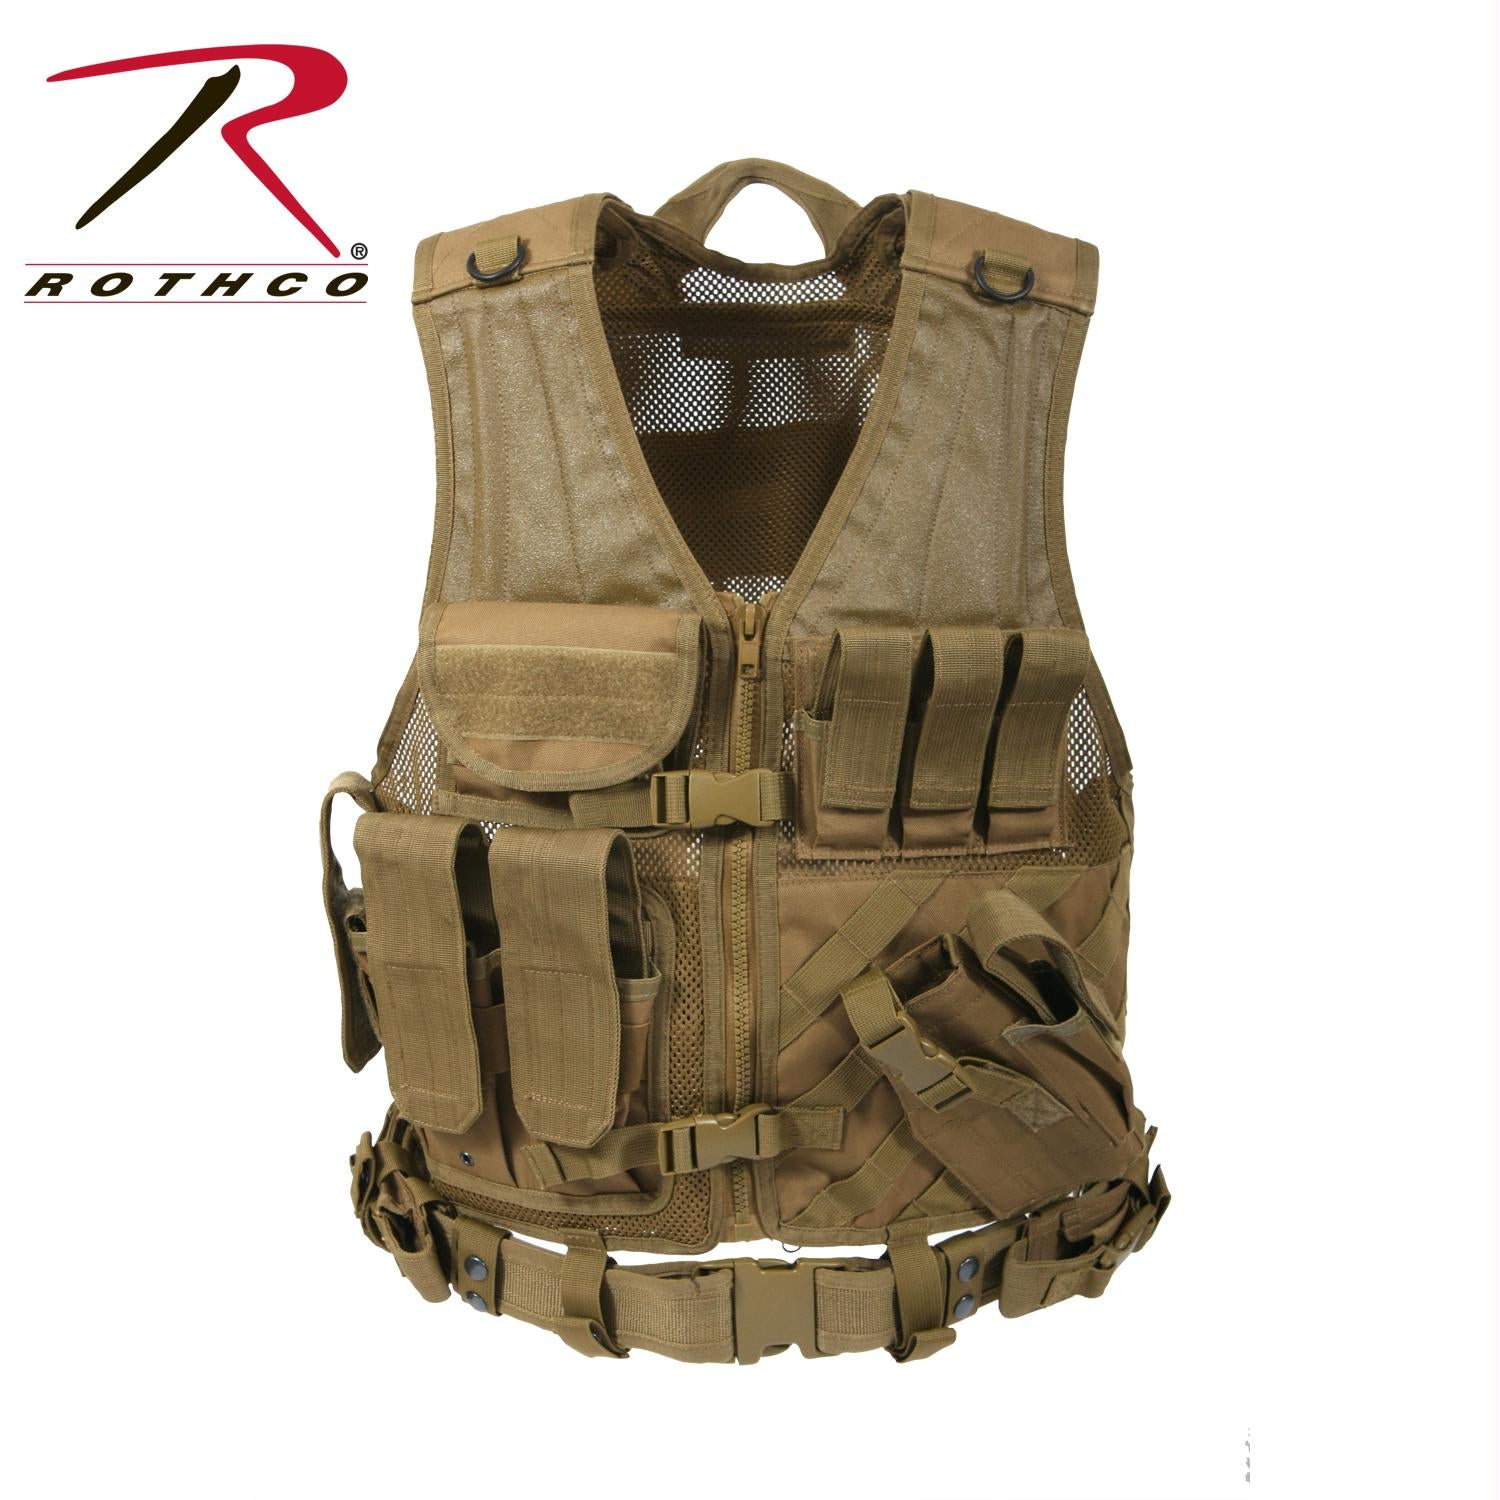 Rothco Cross Draw MOLLE Tactical Vest - Coyote Brown / Oversized